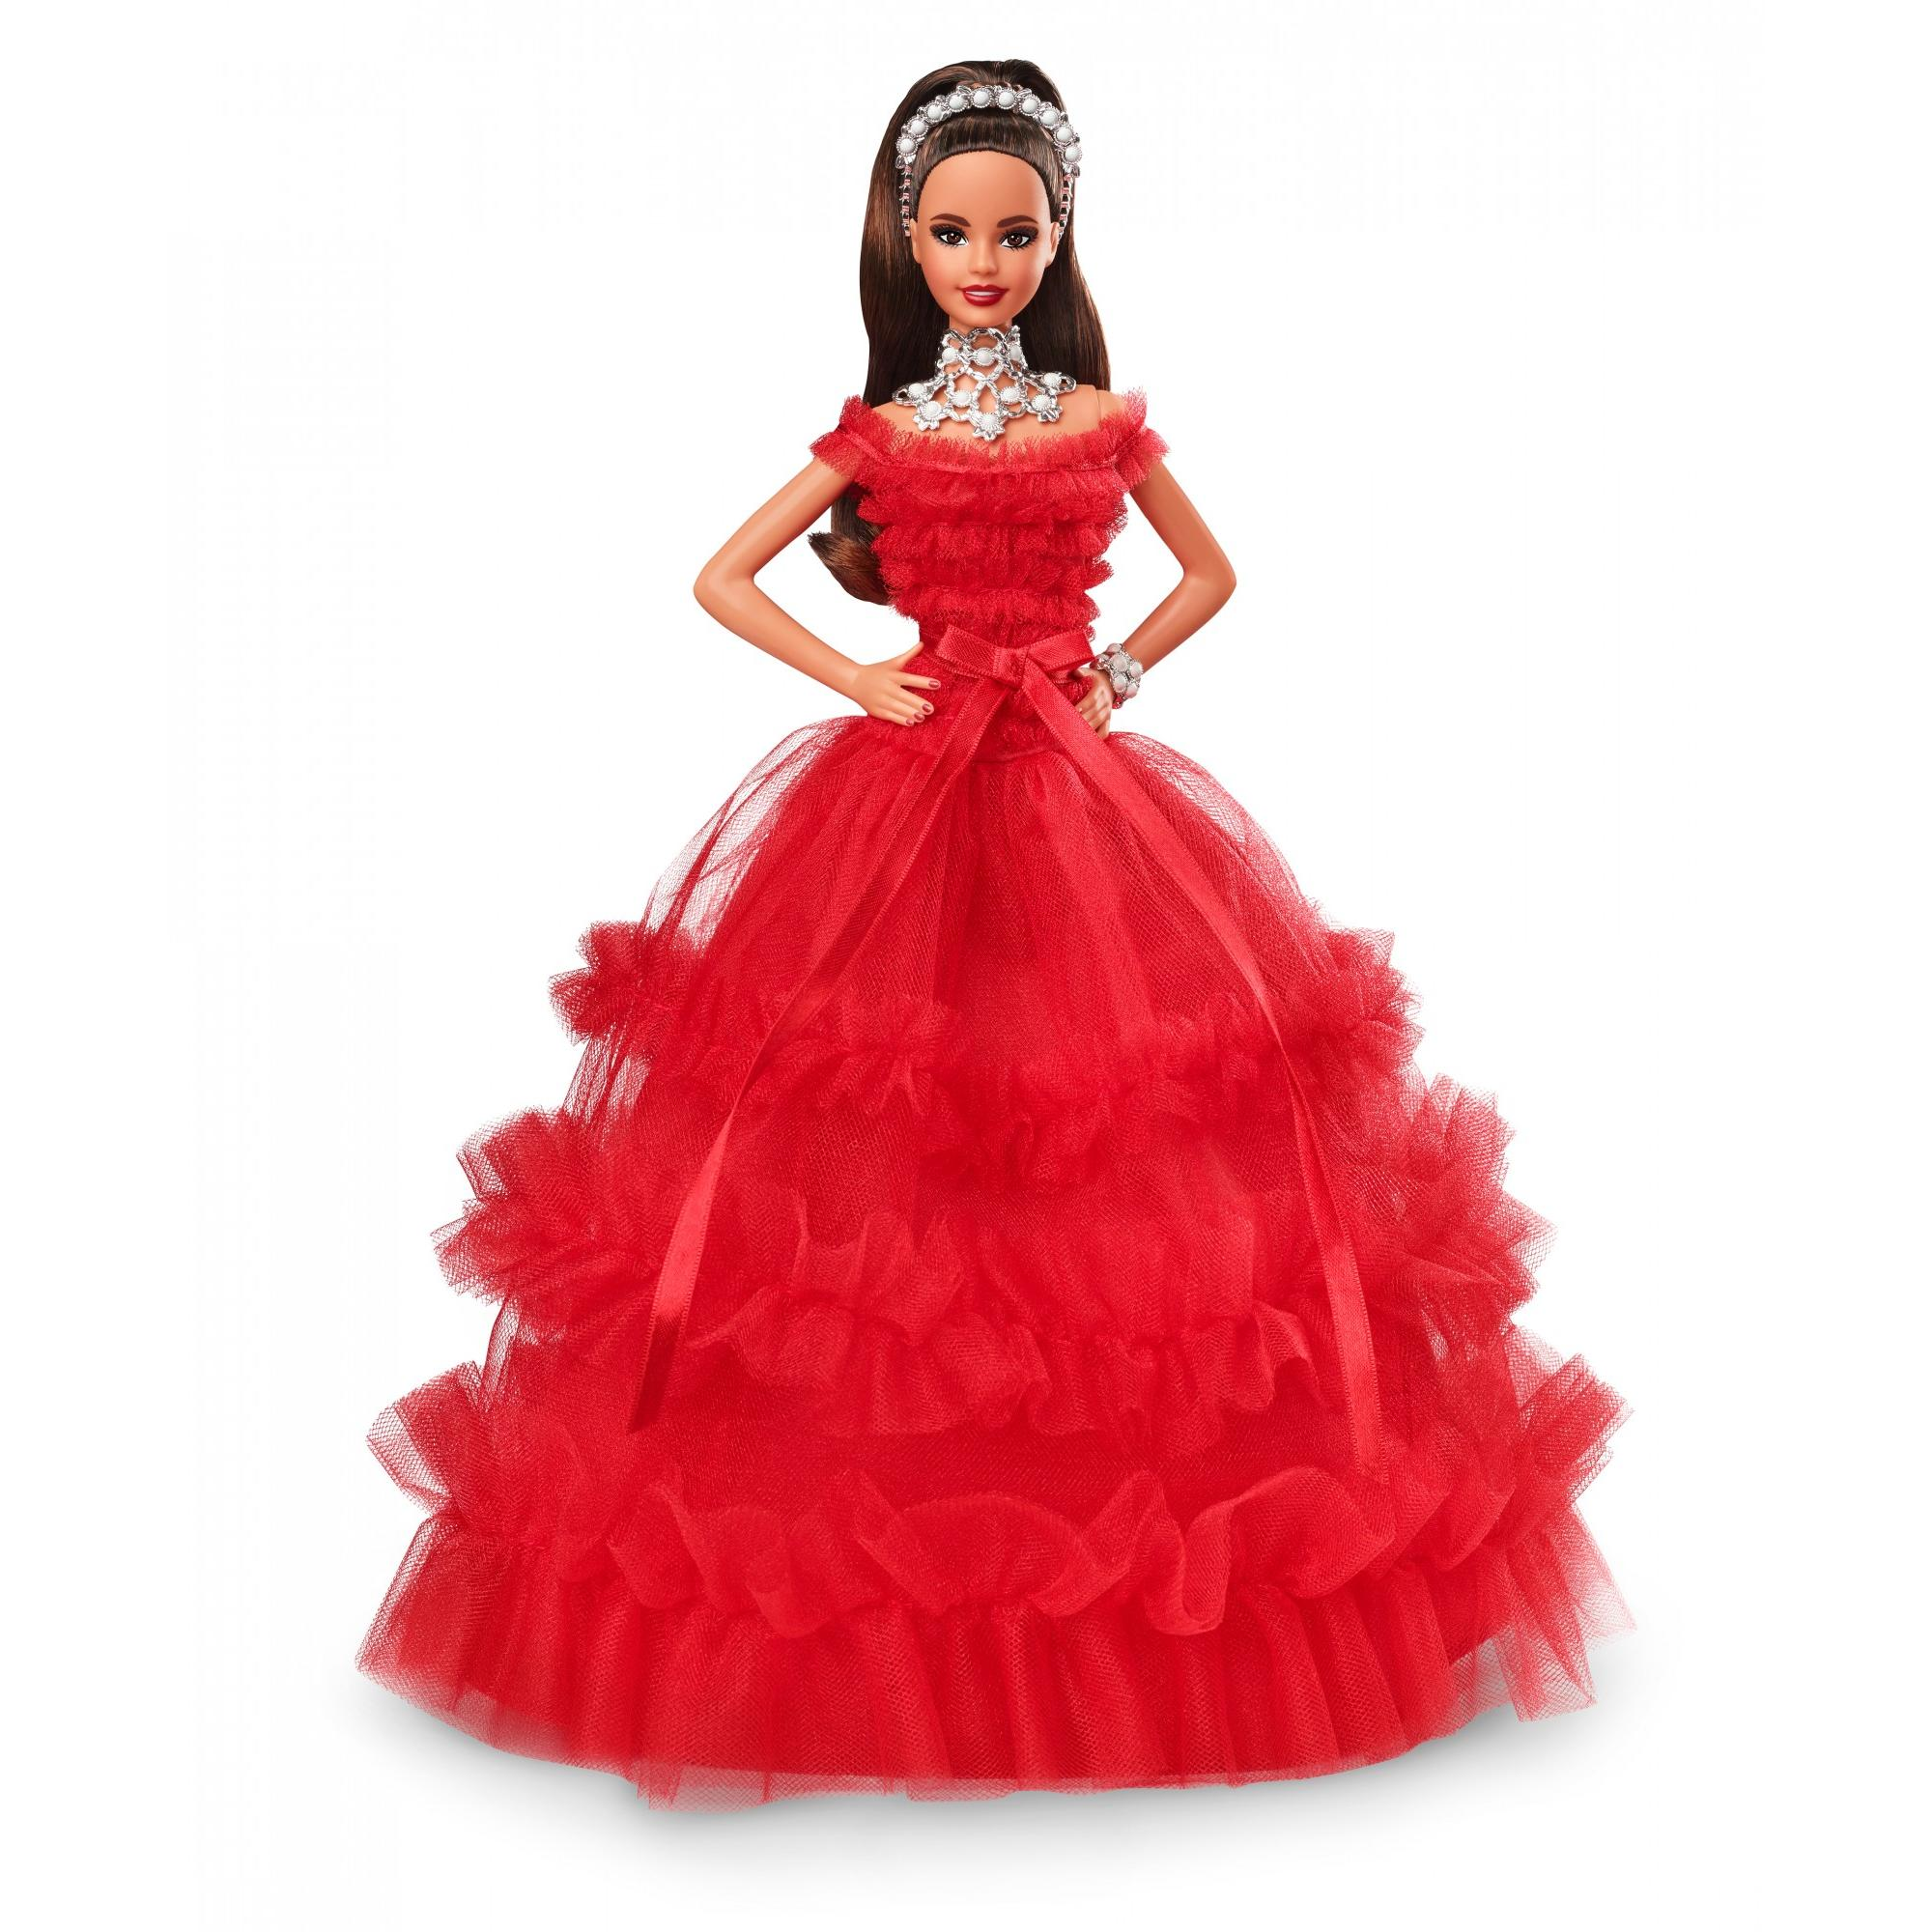 2018 Holiday Barbie Teresa Doll by Mattel